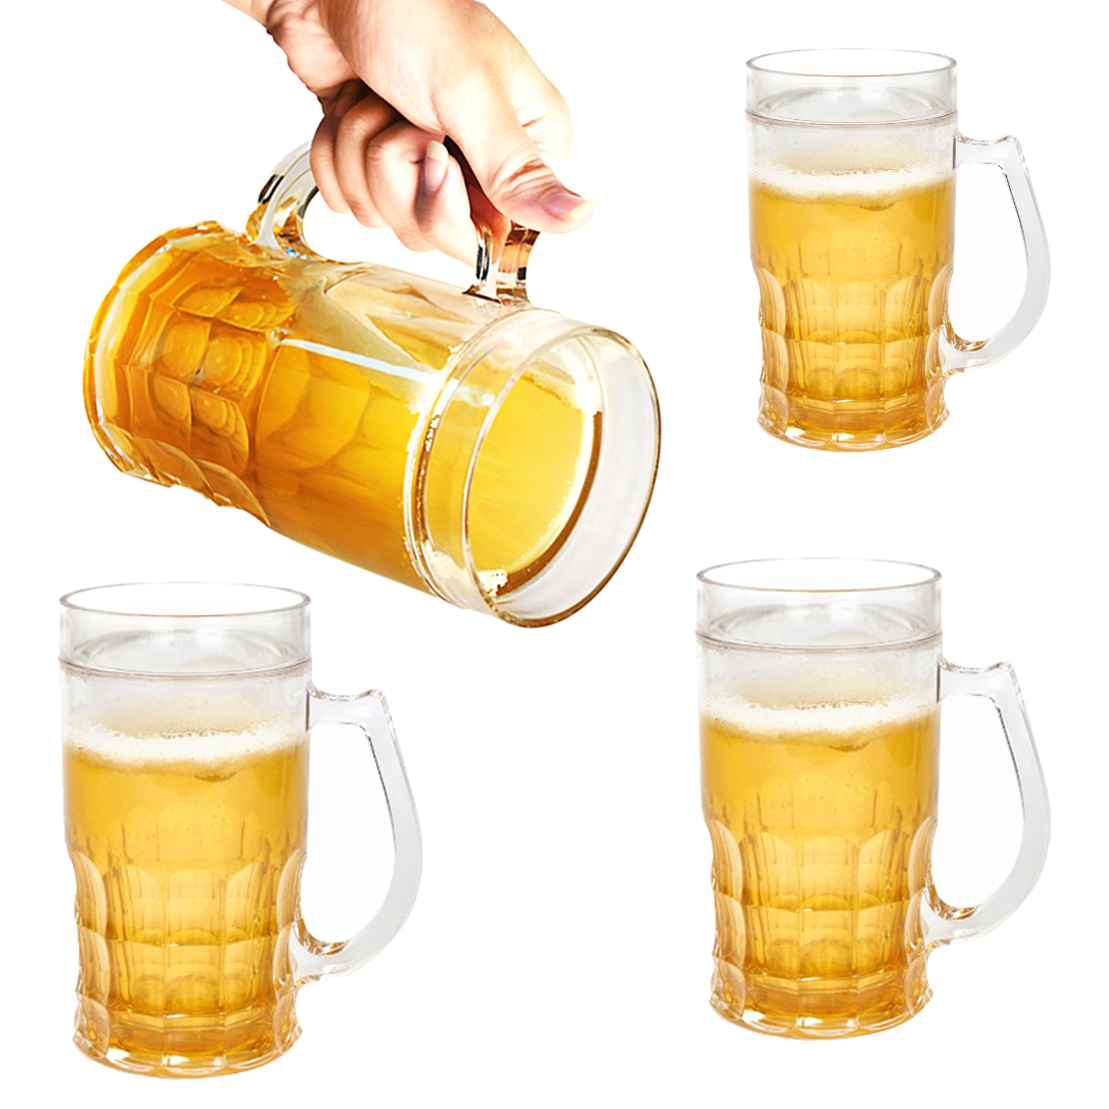 set of 4 evri 13oz plastic insulated funny chillu0027r beer mugs glasses for freezer novelty silly walmartcom